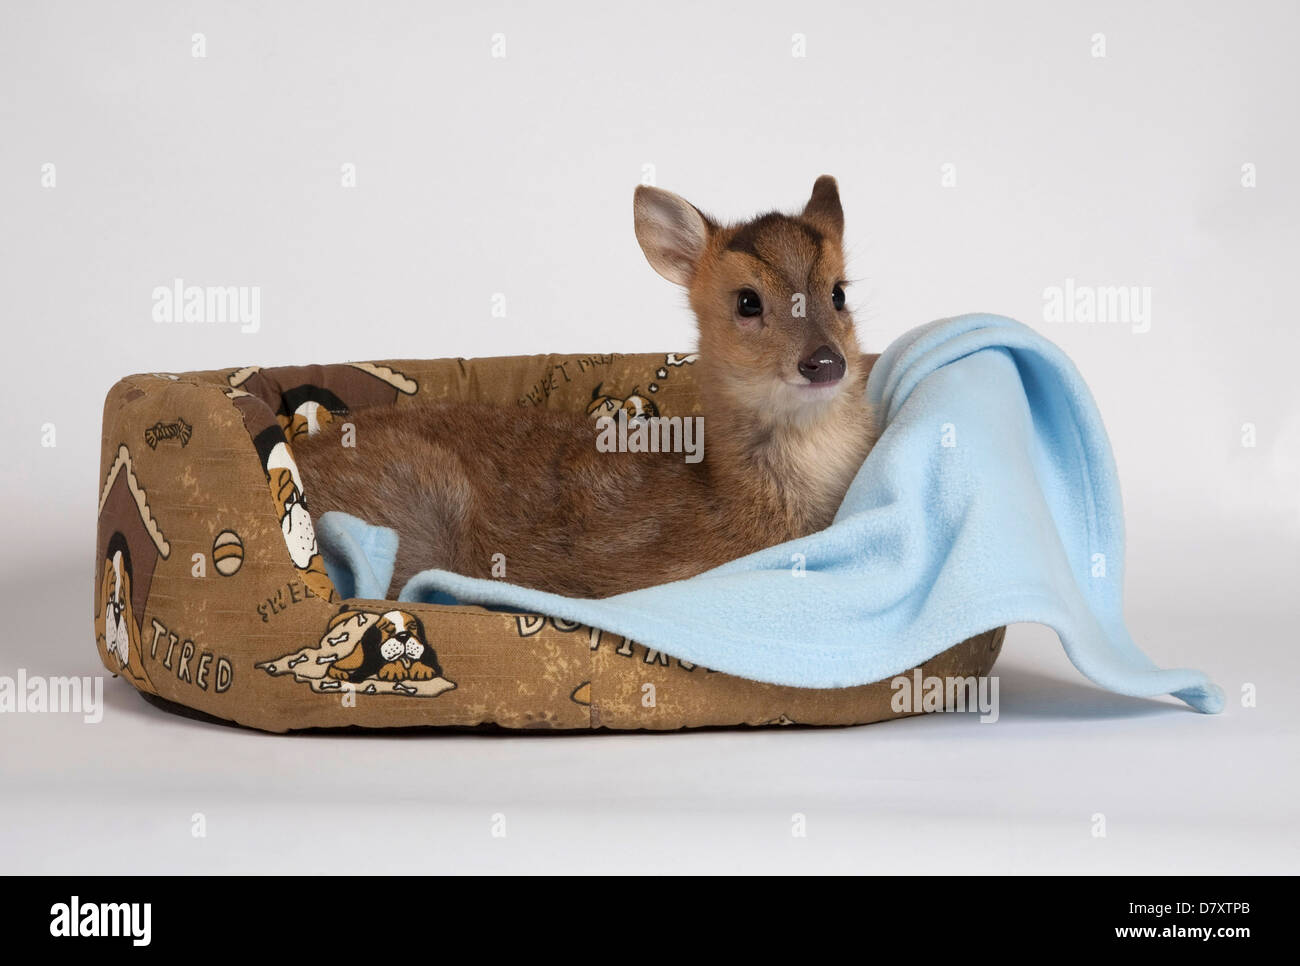 Muntjac Deer Fawn in dog bed - Stock Image